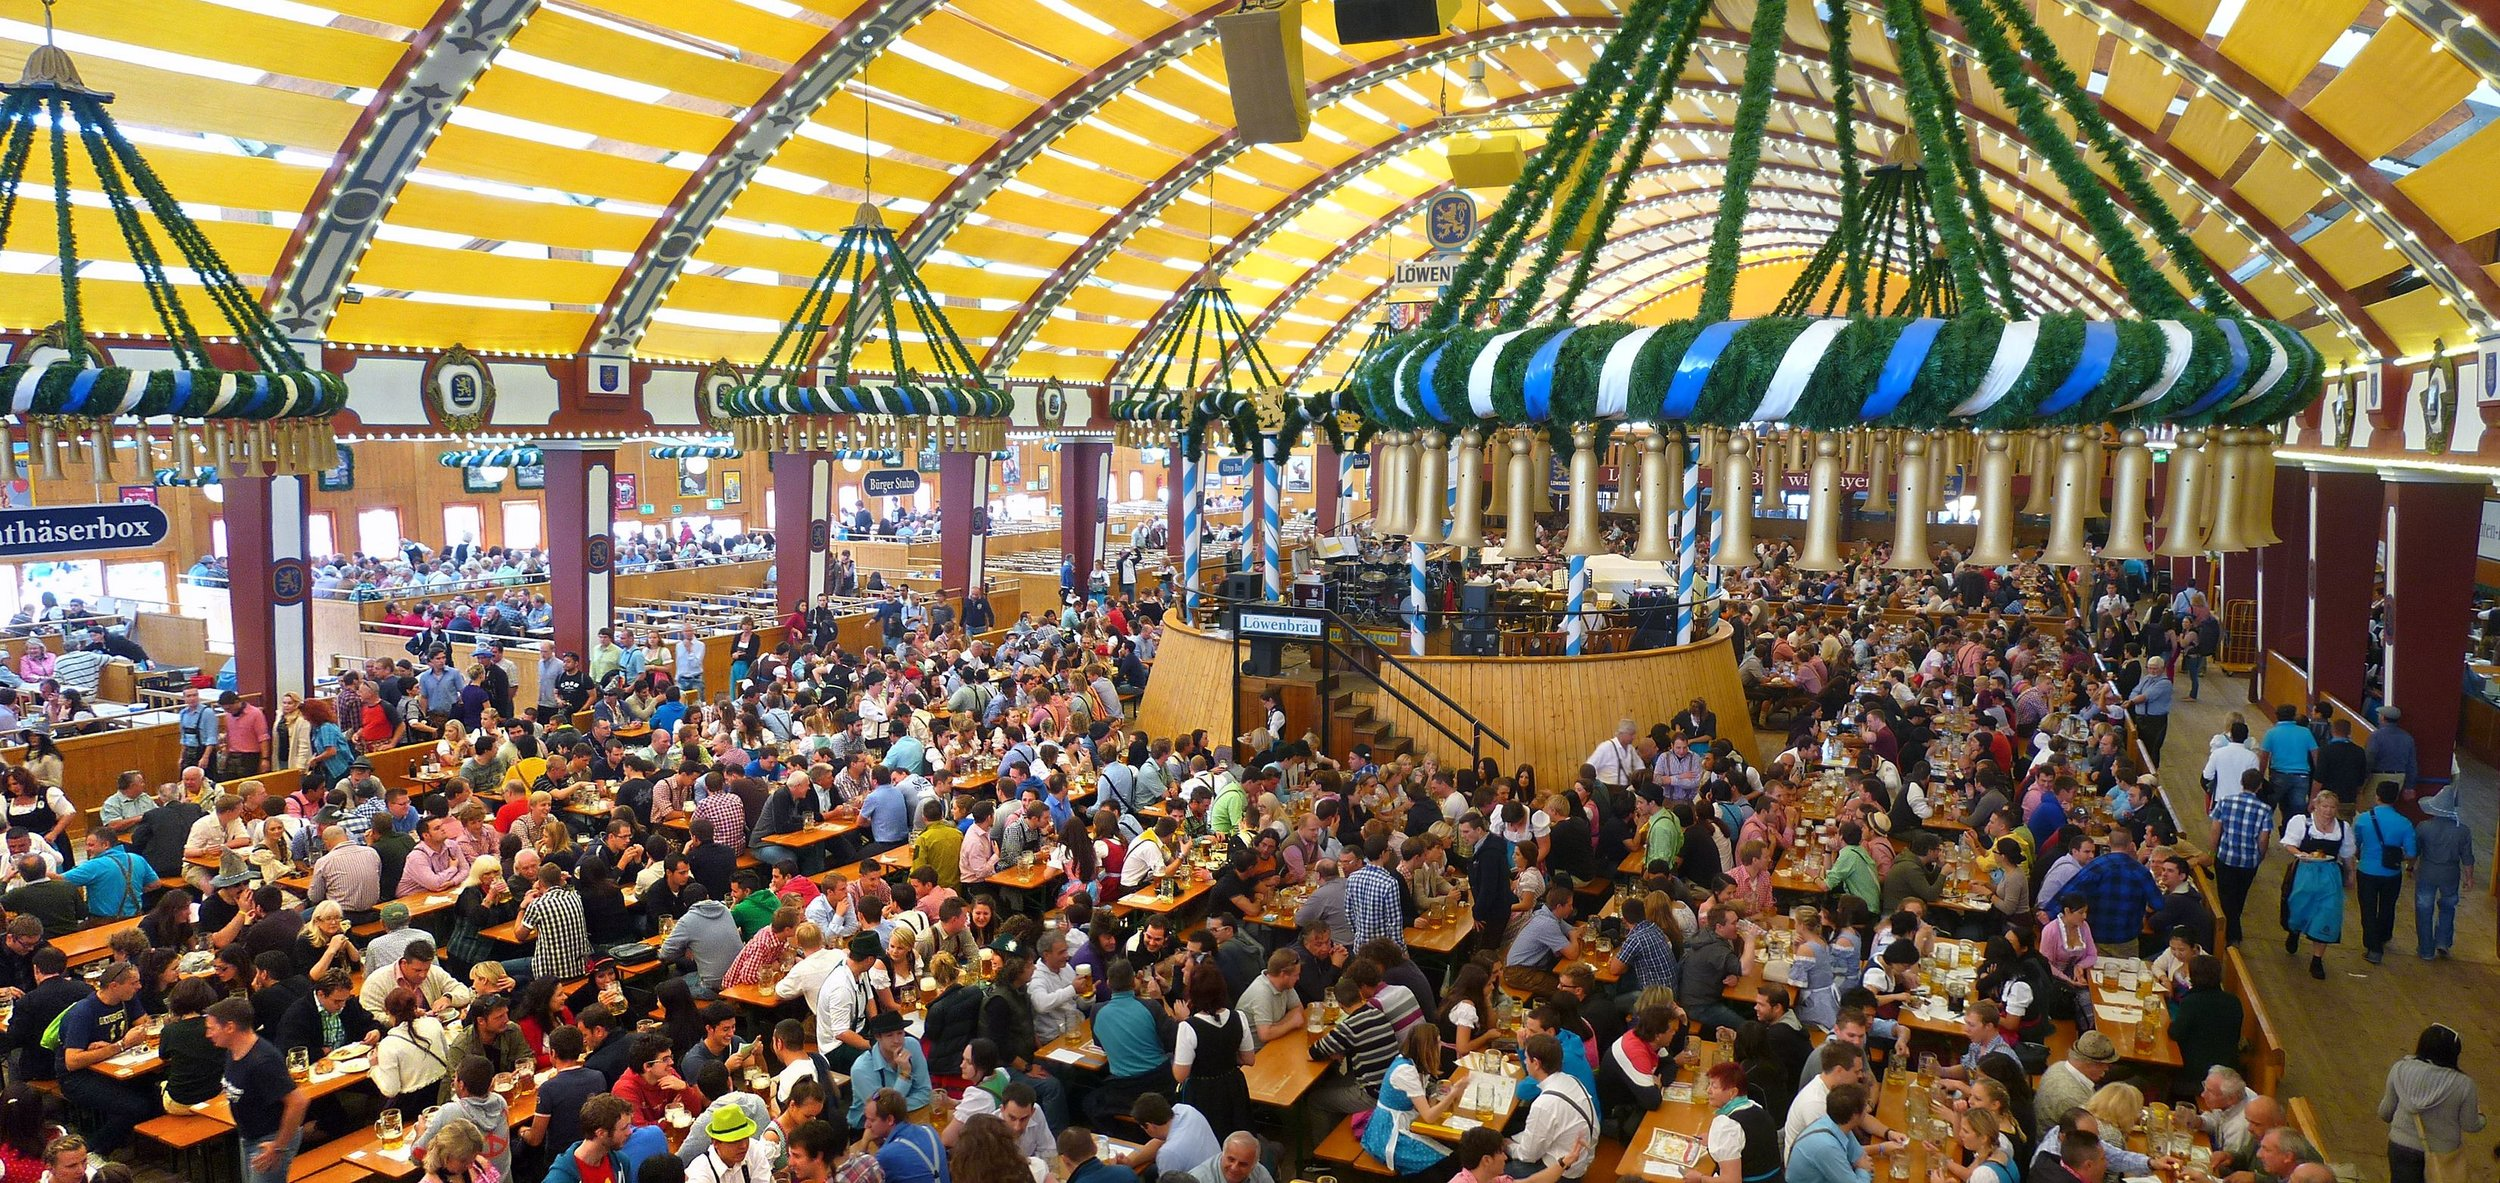 Oktoberfest - The world's largest Volksfest celebrated every year